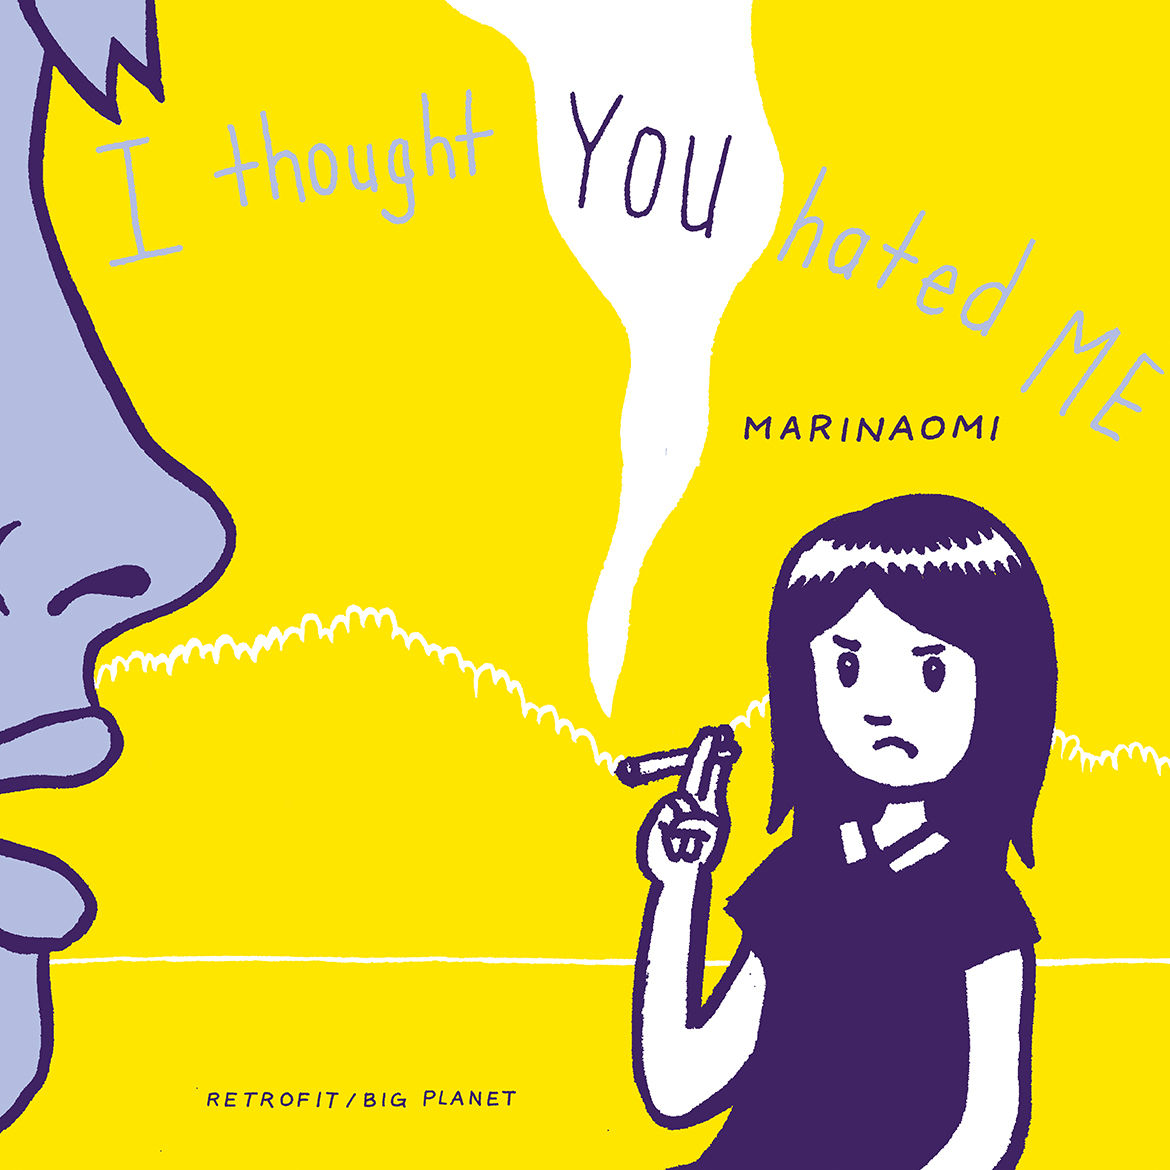 Cover Photo: The Making of a Comics Memoir by MariNaomi !